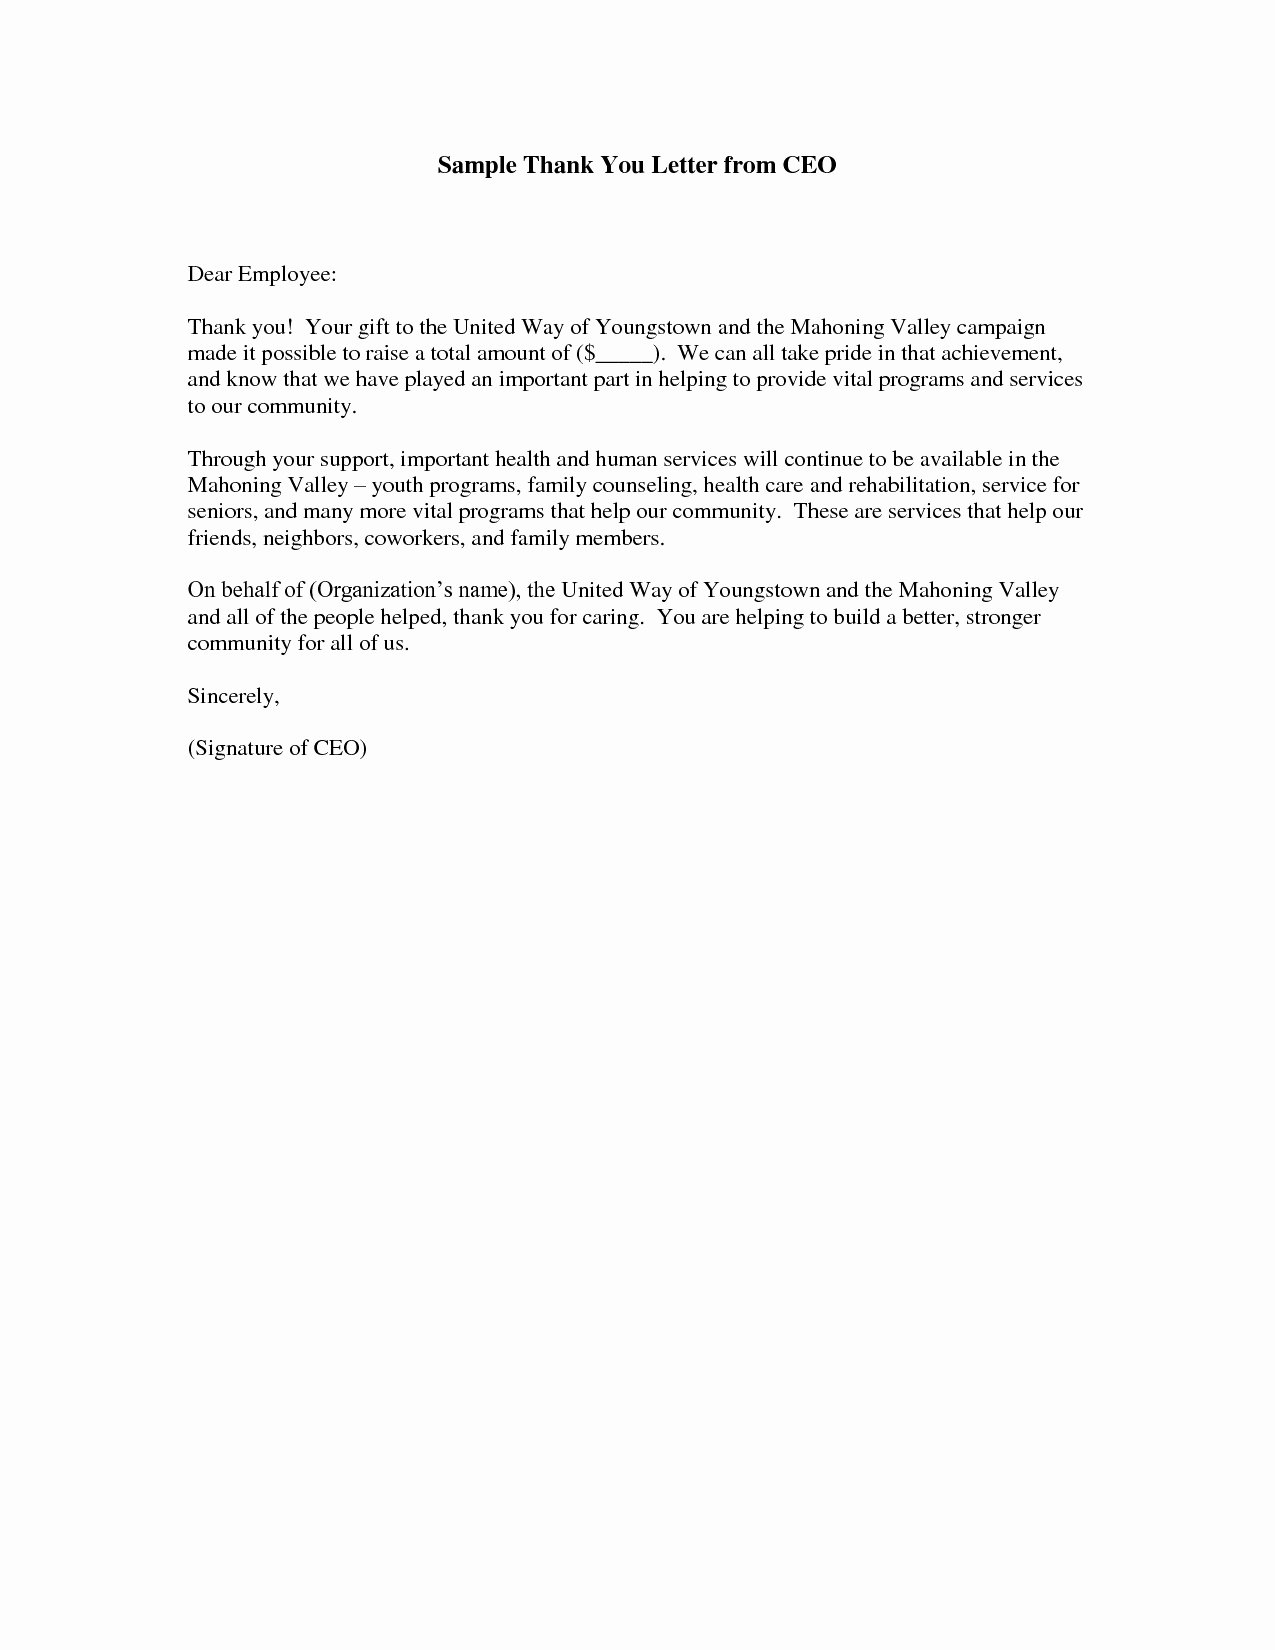 Welcome to the Neighborhood Letter From Business Awesome Car Donation Letter Template Samples